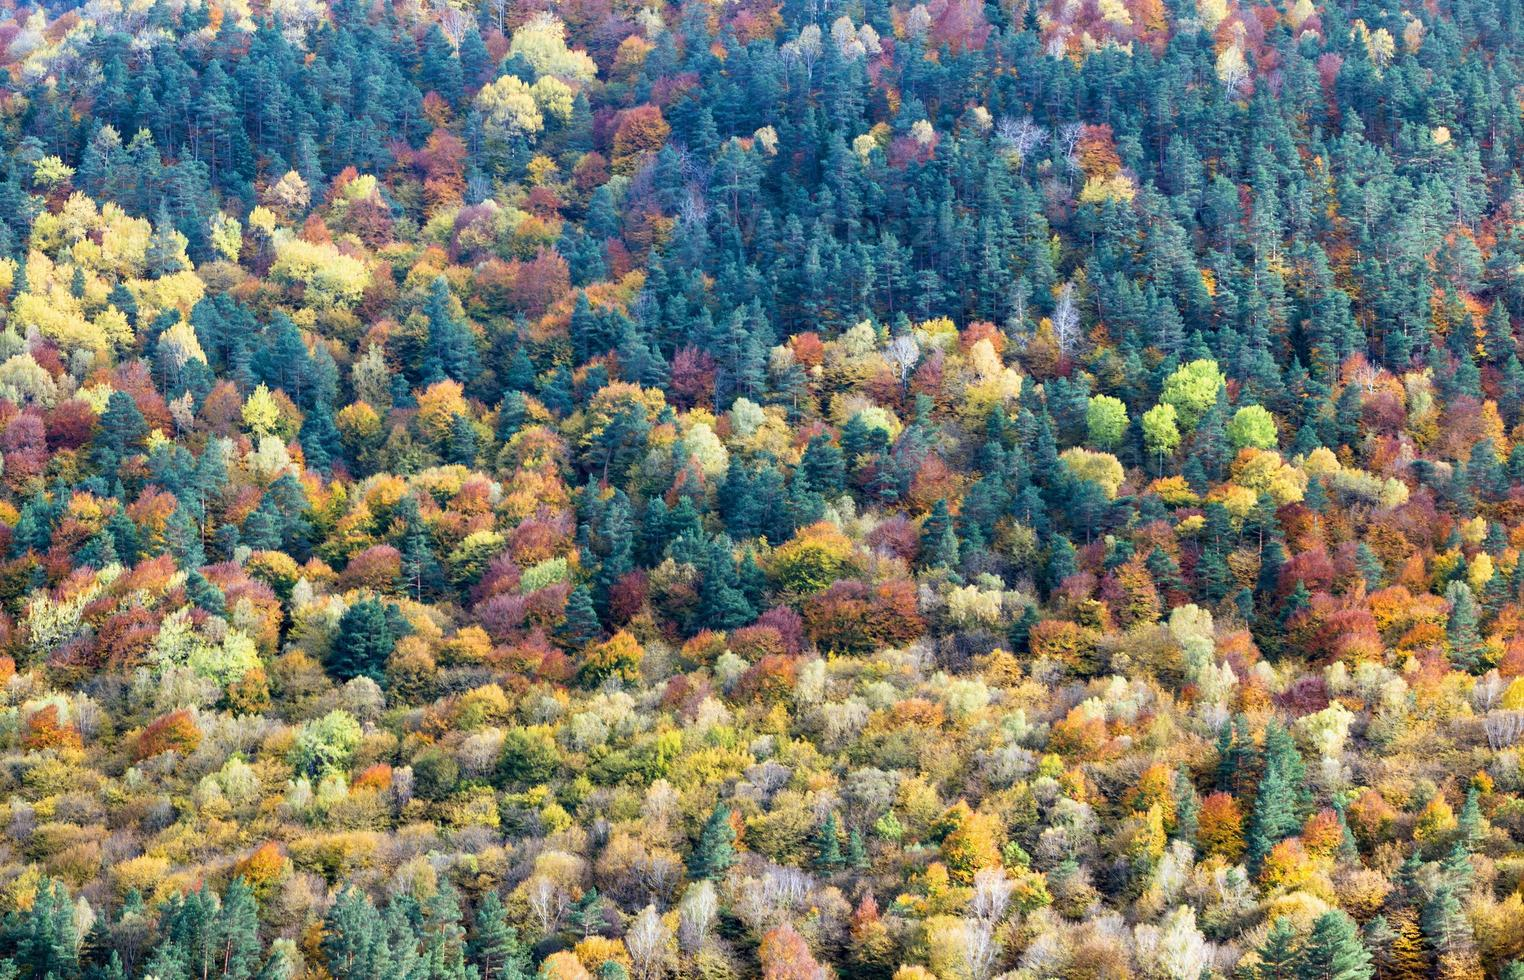 Background of yellow and orange trees in autumn in a forest photo